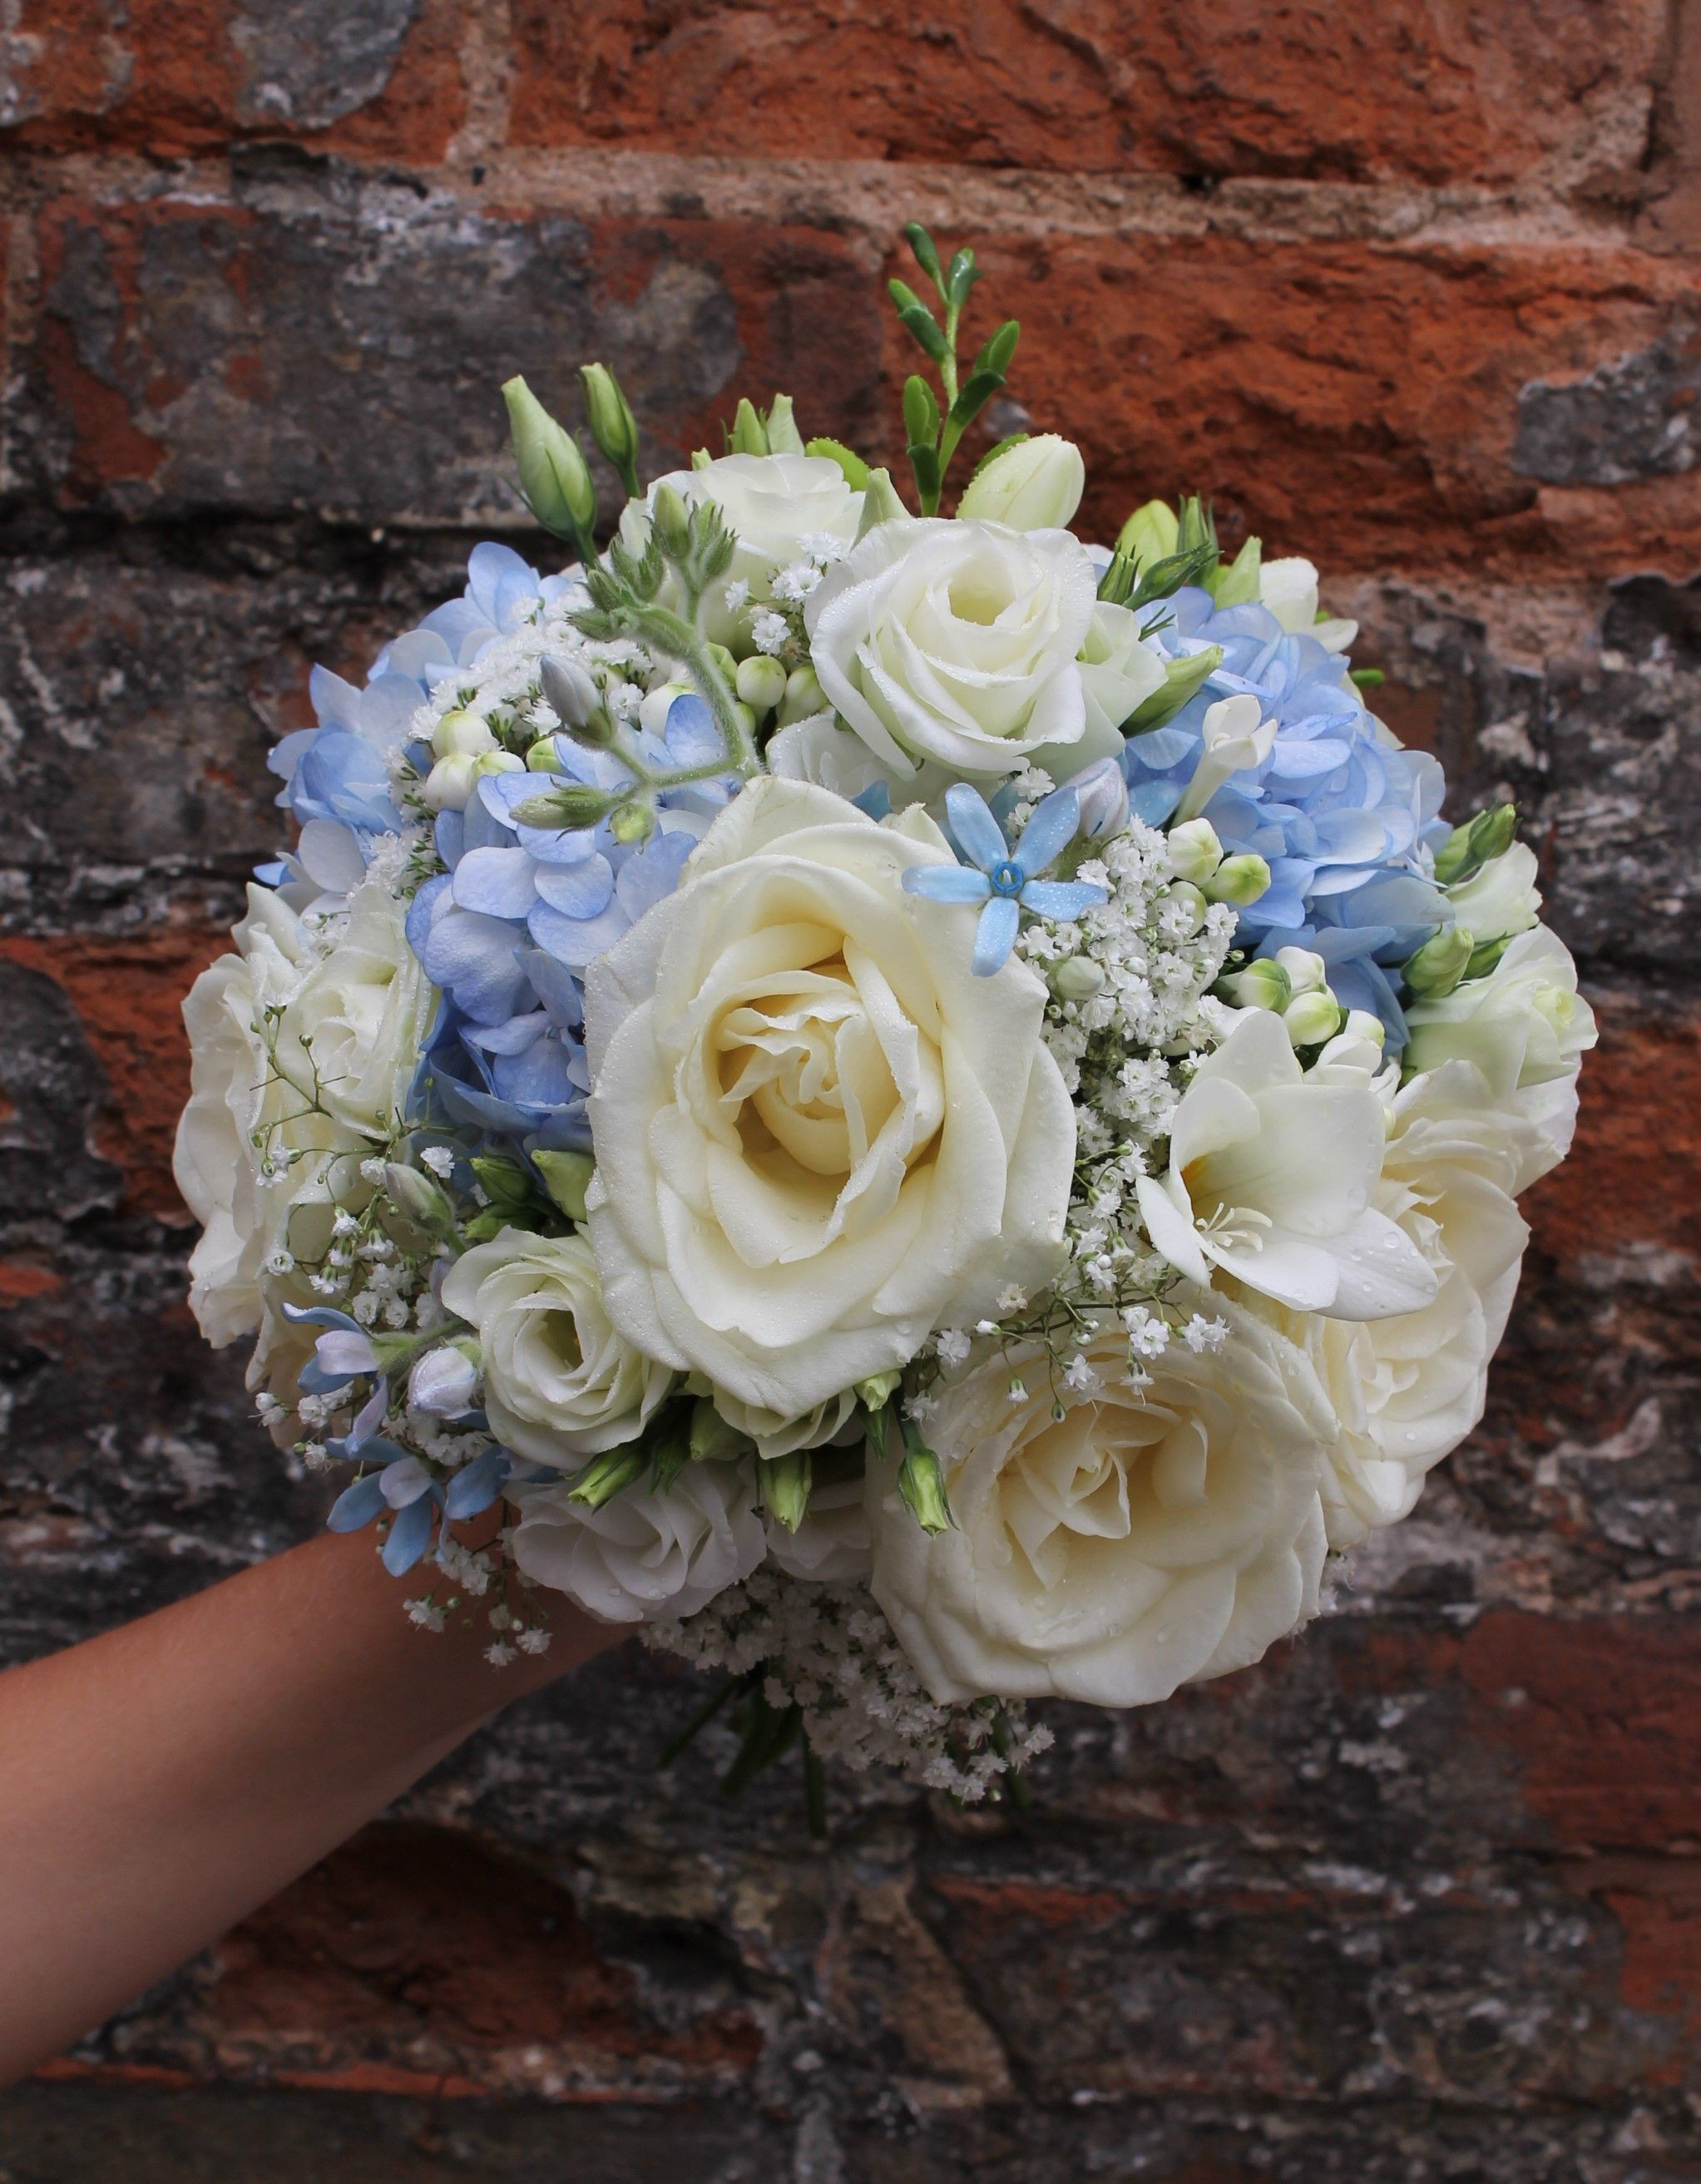 bridesmaid s bouquet hand tied design pale blue and ivory flowers delphinium hydrangea avalanche rose oxypetalum gypsophila freesia and